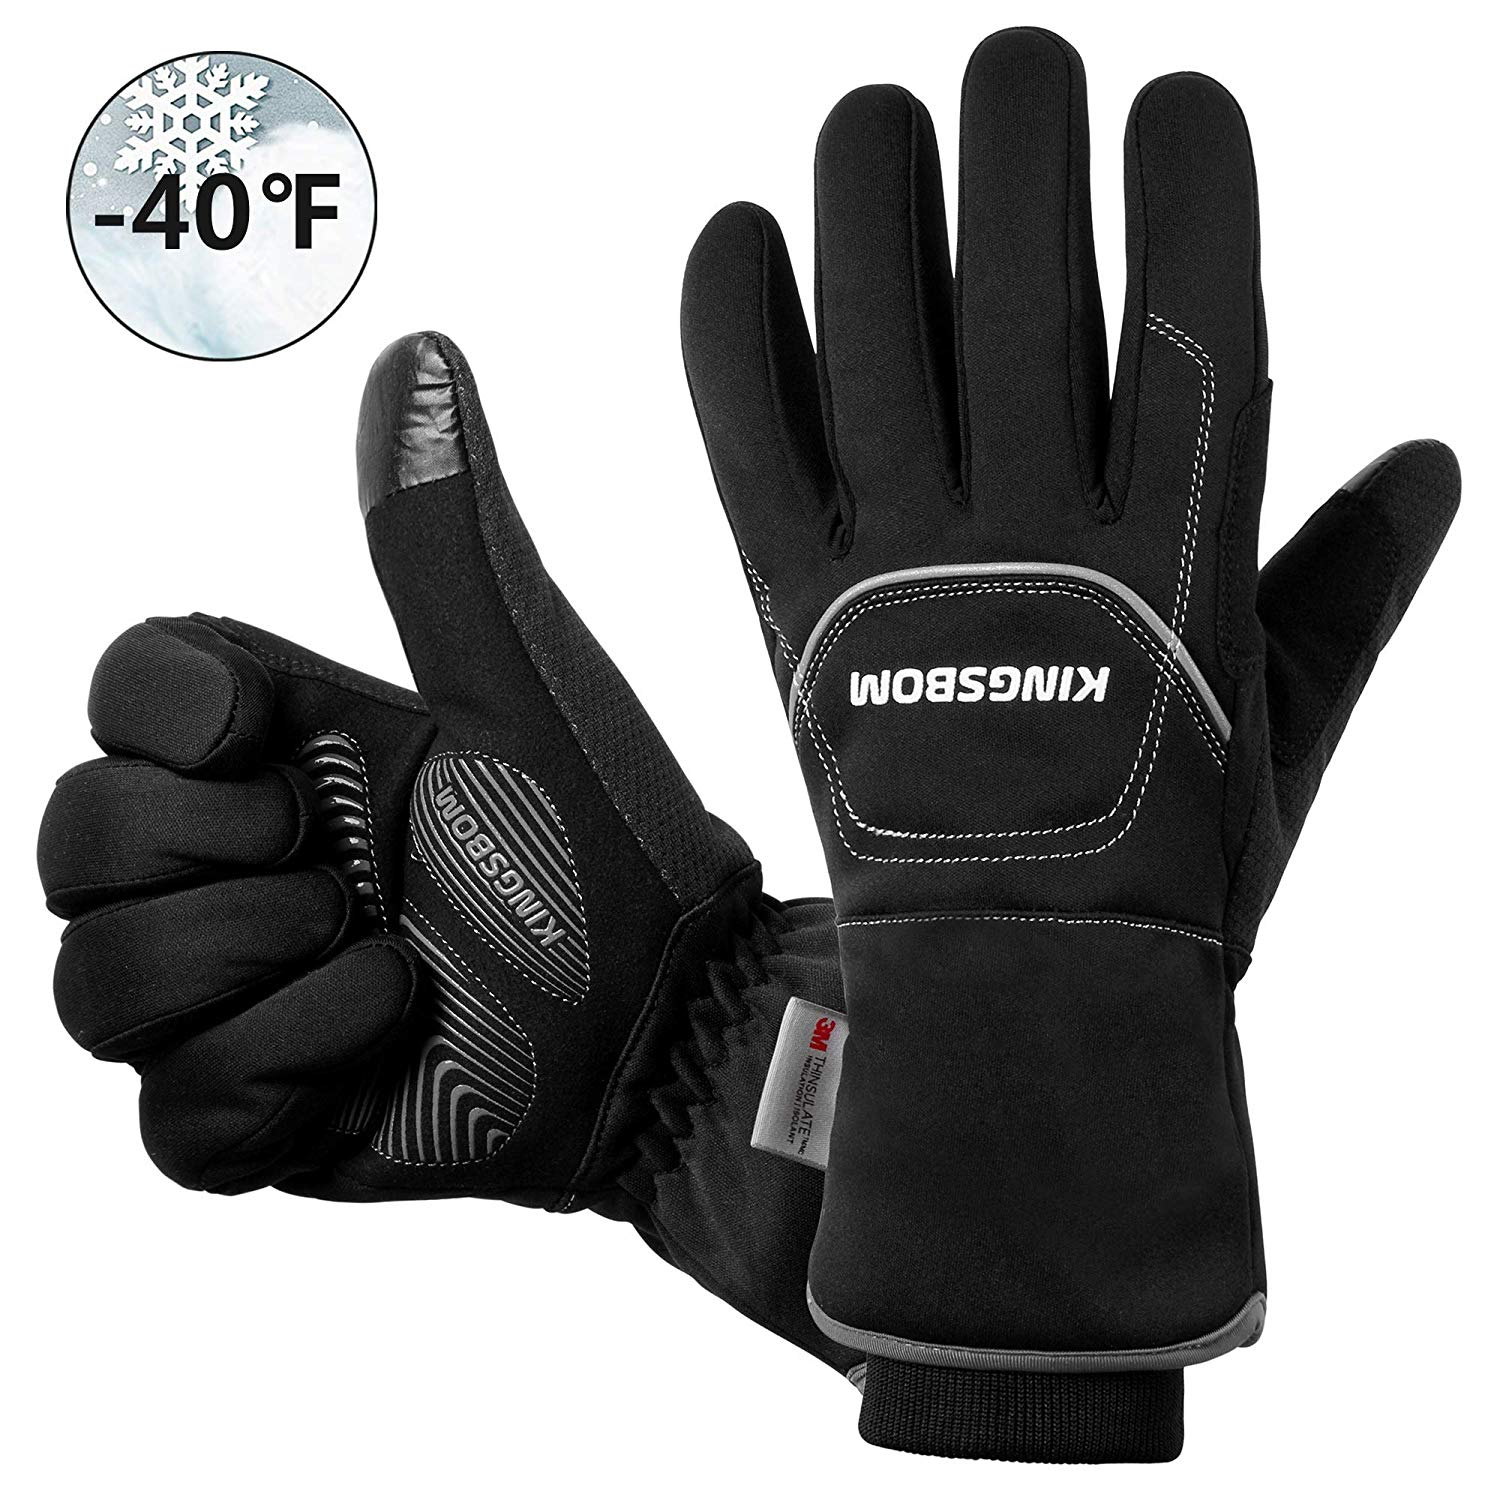 KINGSBOM Waterproof & Windproof Thermal Gloves - 3M Thinsulate Winter Touch Screen Warm Gloves - for Cycling,Riding,Running,Outdoor Sports - for Women and Men - Black